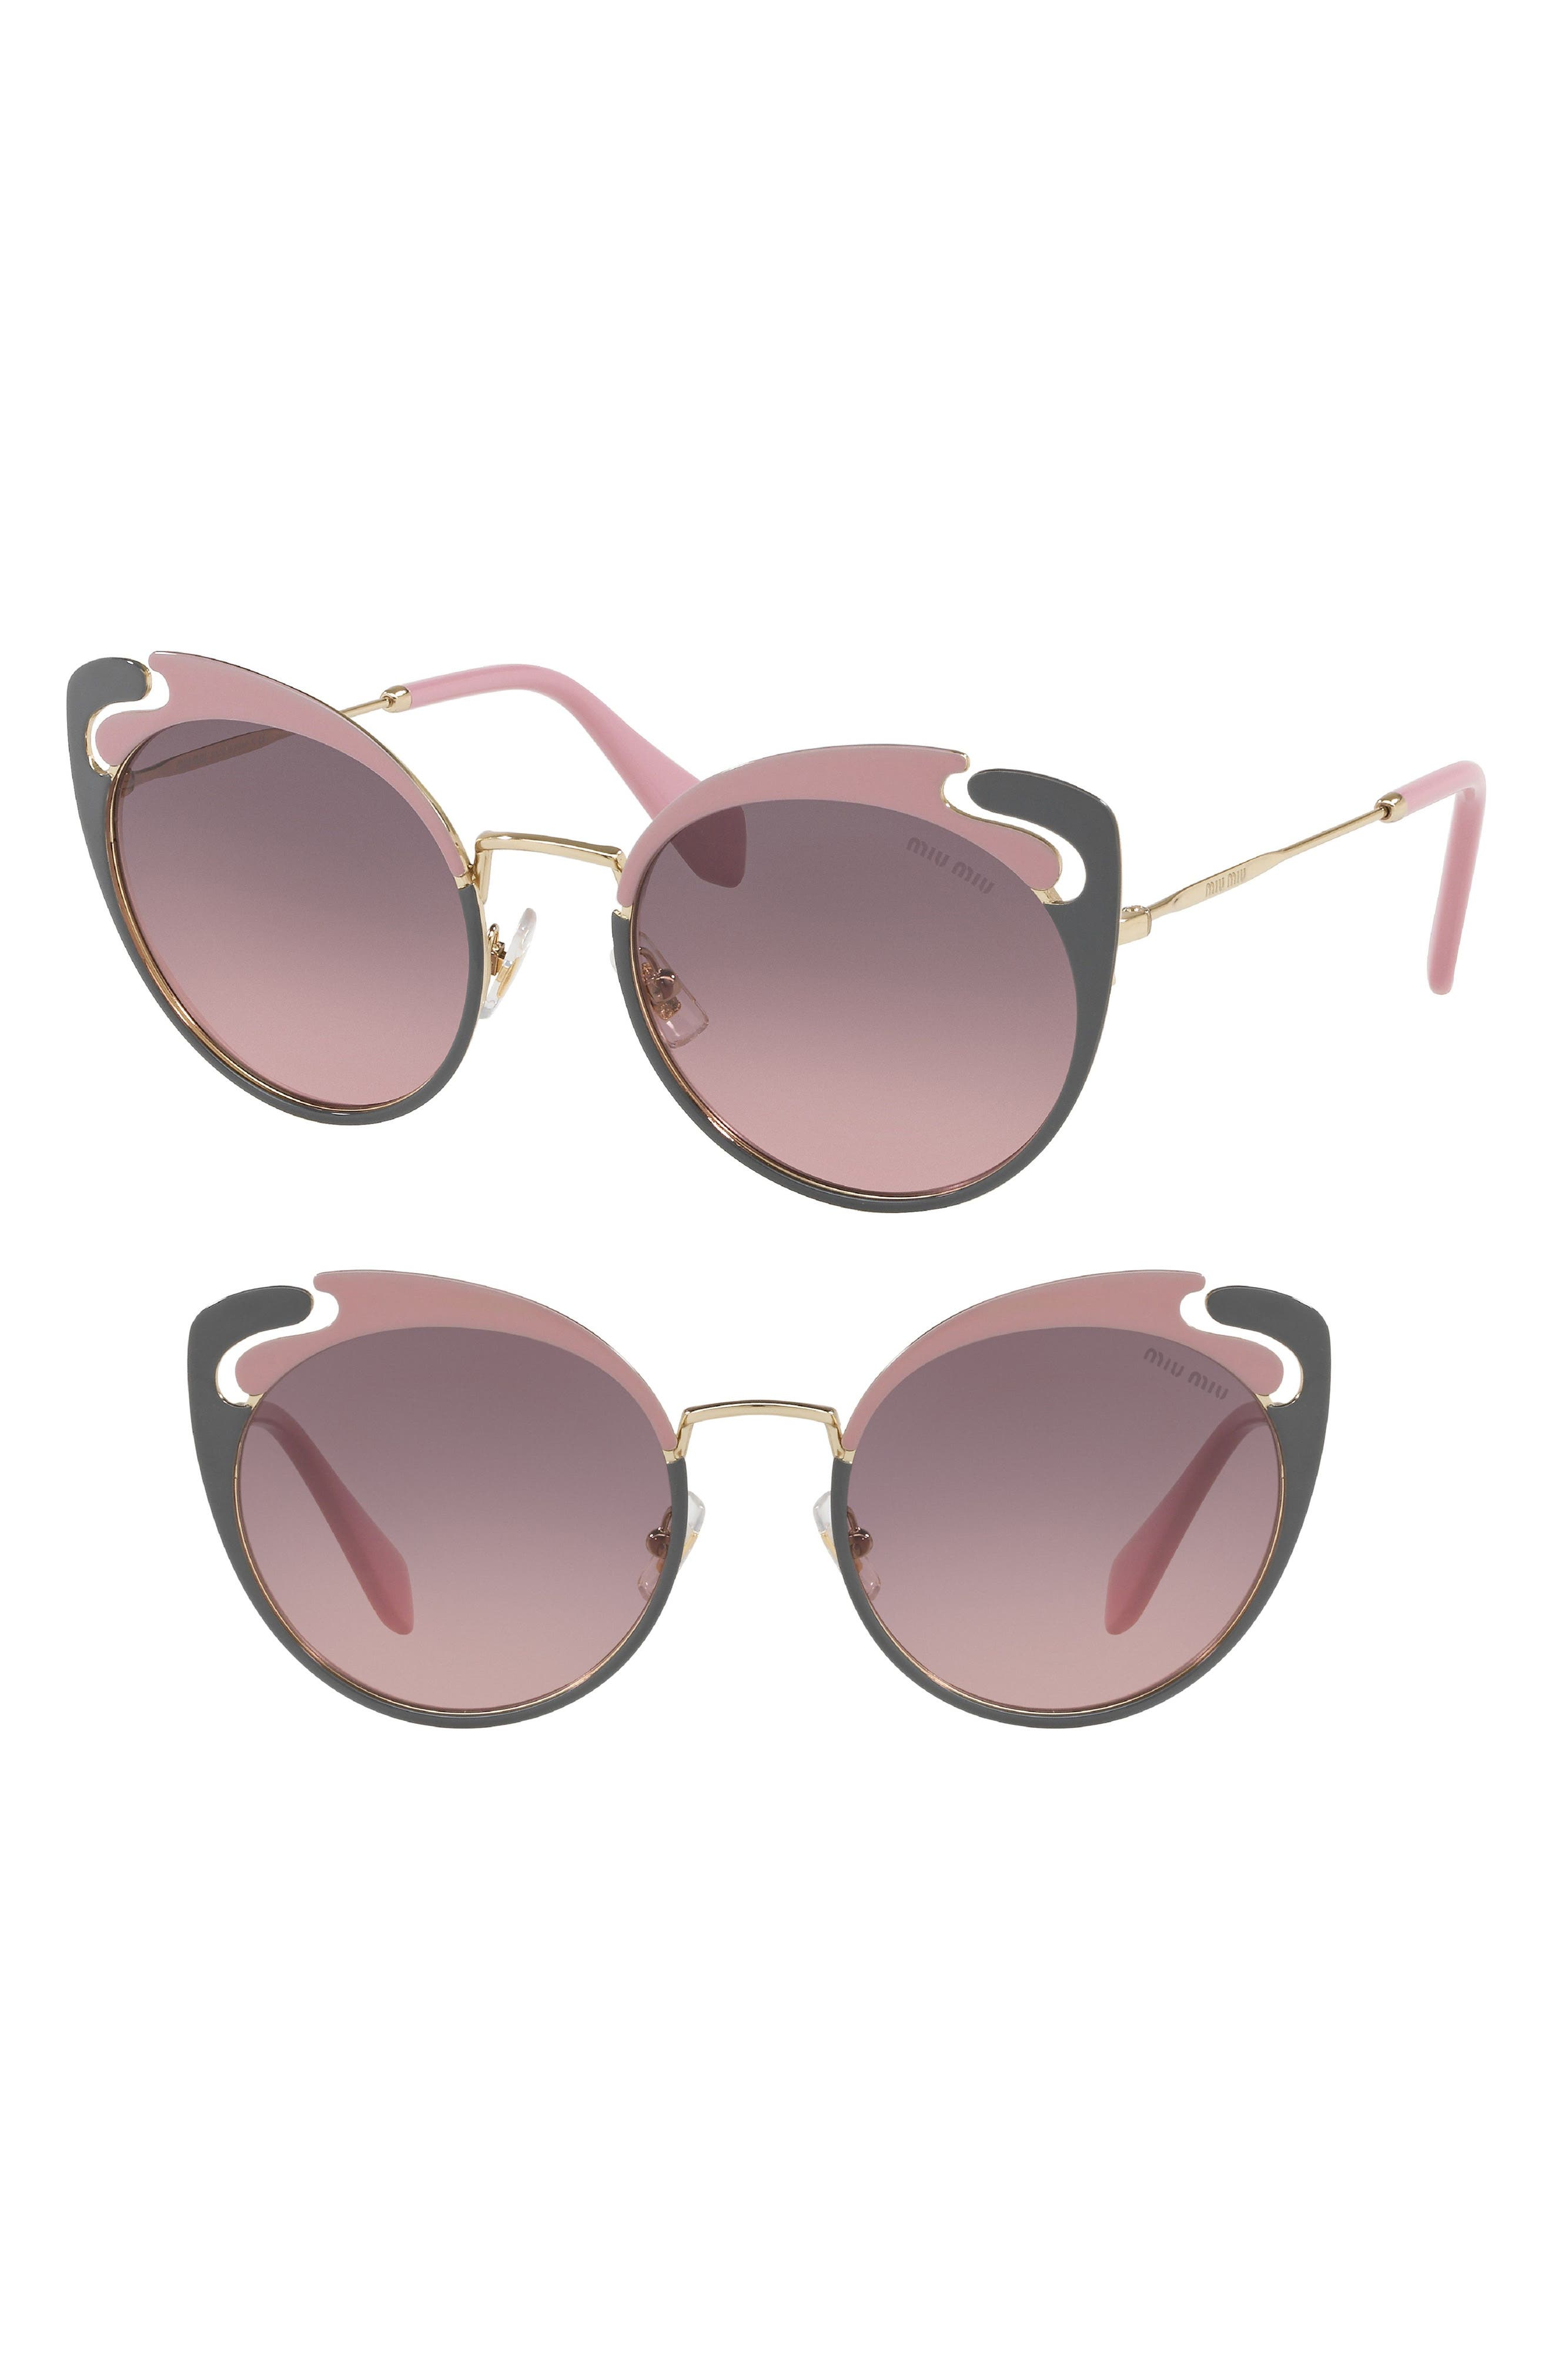 Miu Miu Noir Evolution 5m Cat Eye Sunglasses - Gold/ Pink Gradient